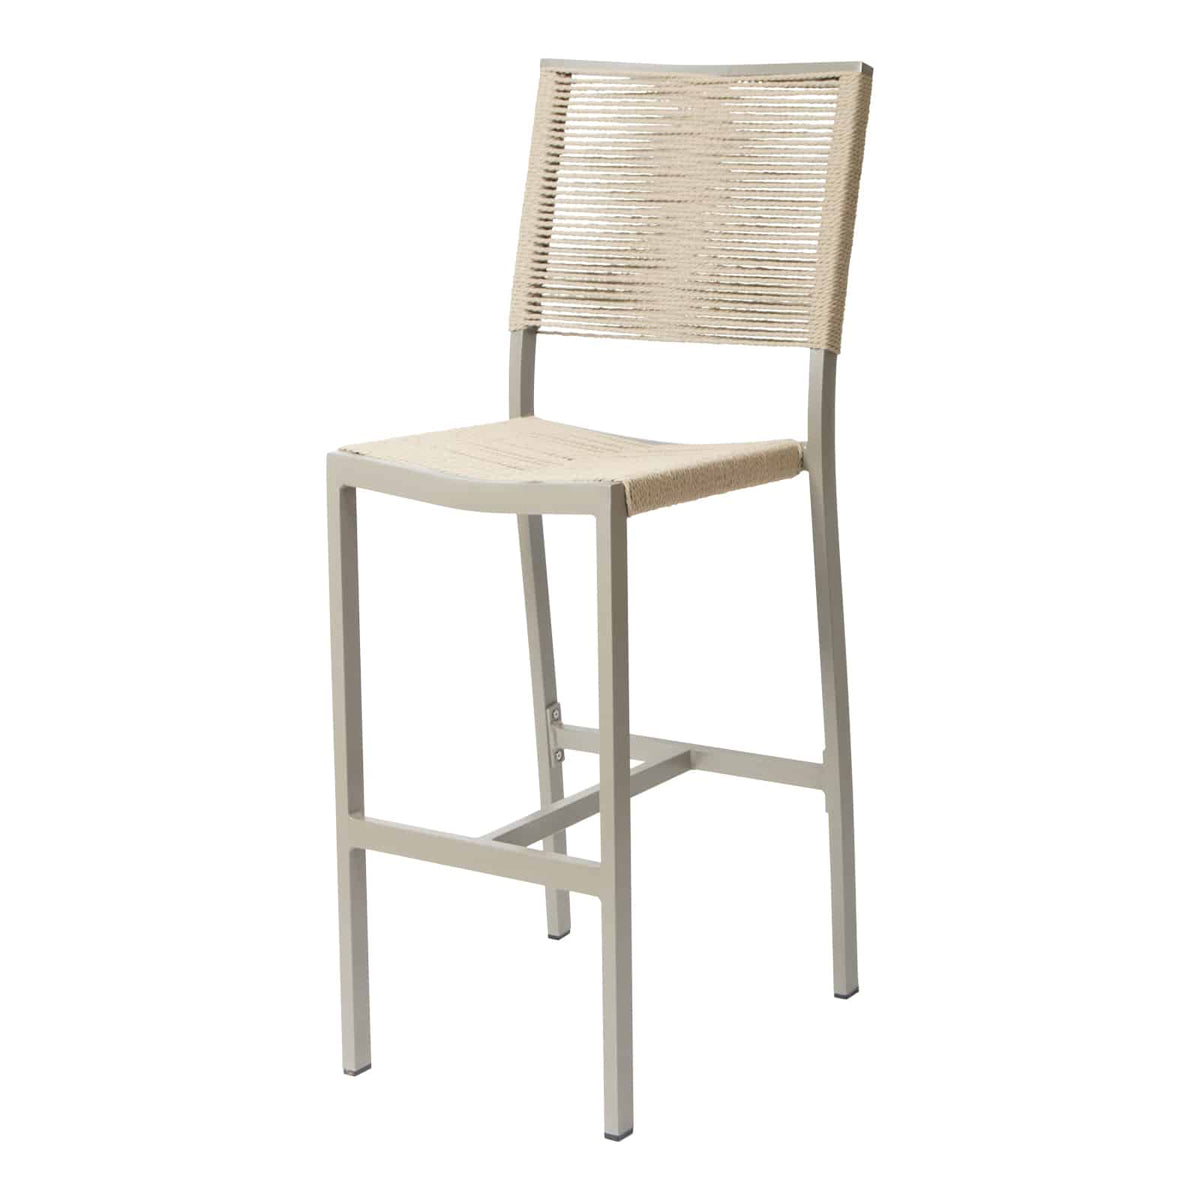 Source Furniture Source Furniture Fiji Rope Bar Side Chair Bar Side Chair - Rattan Imports